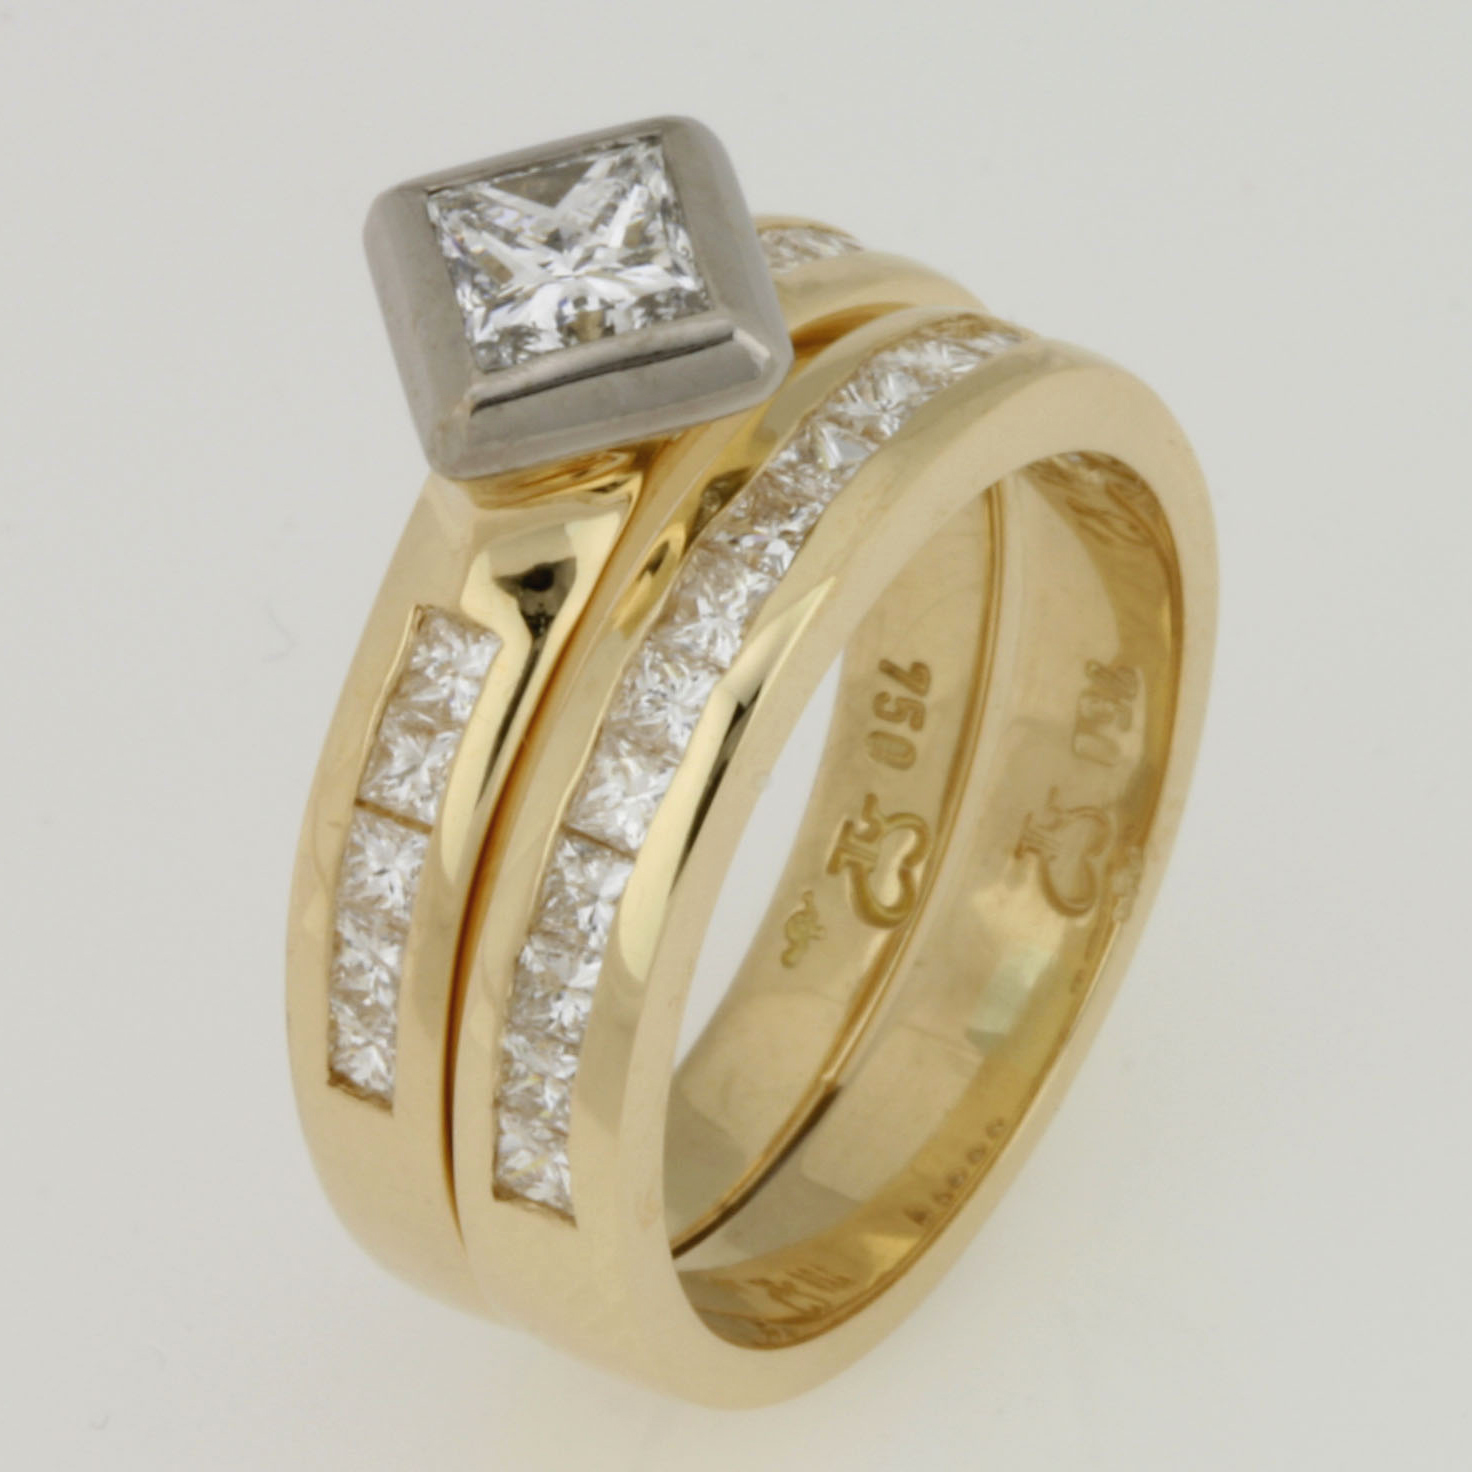 Handmade ladies 18ct yellow gold diamond wedding set